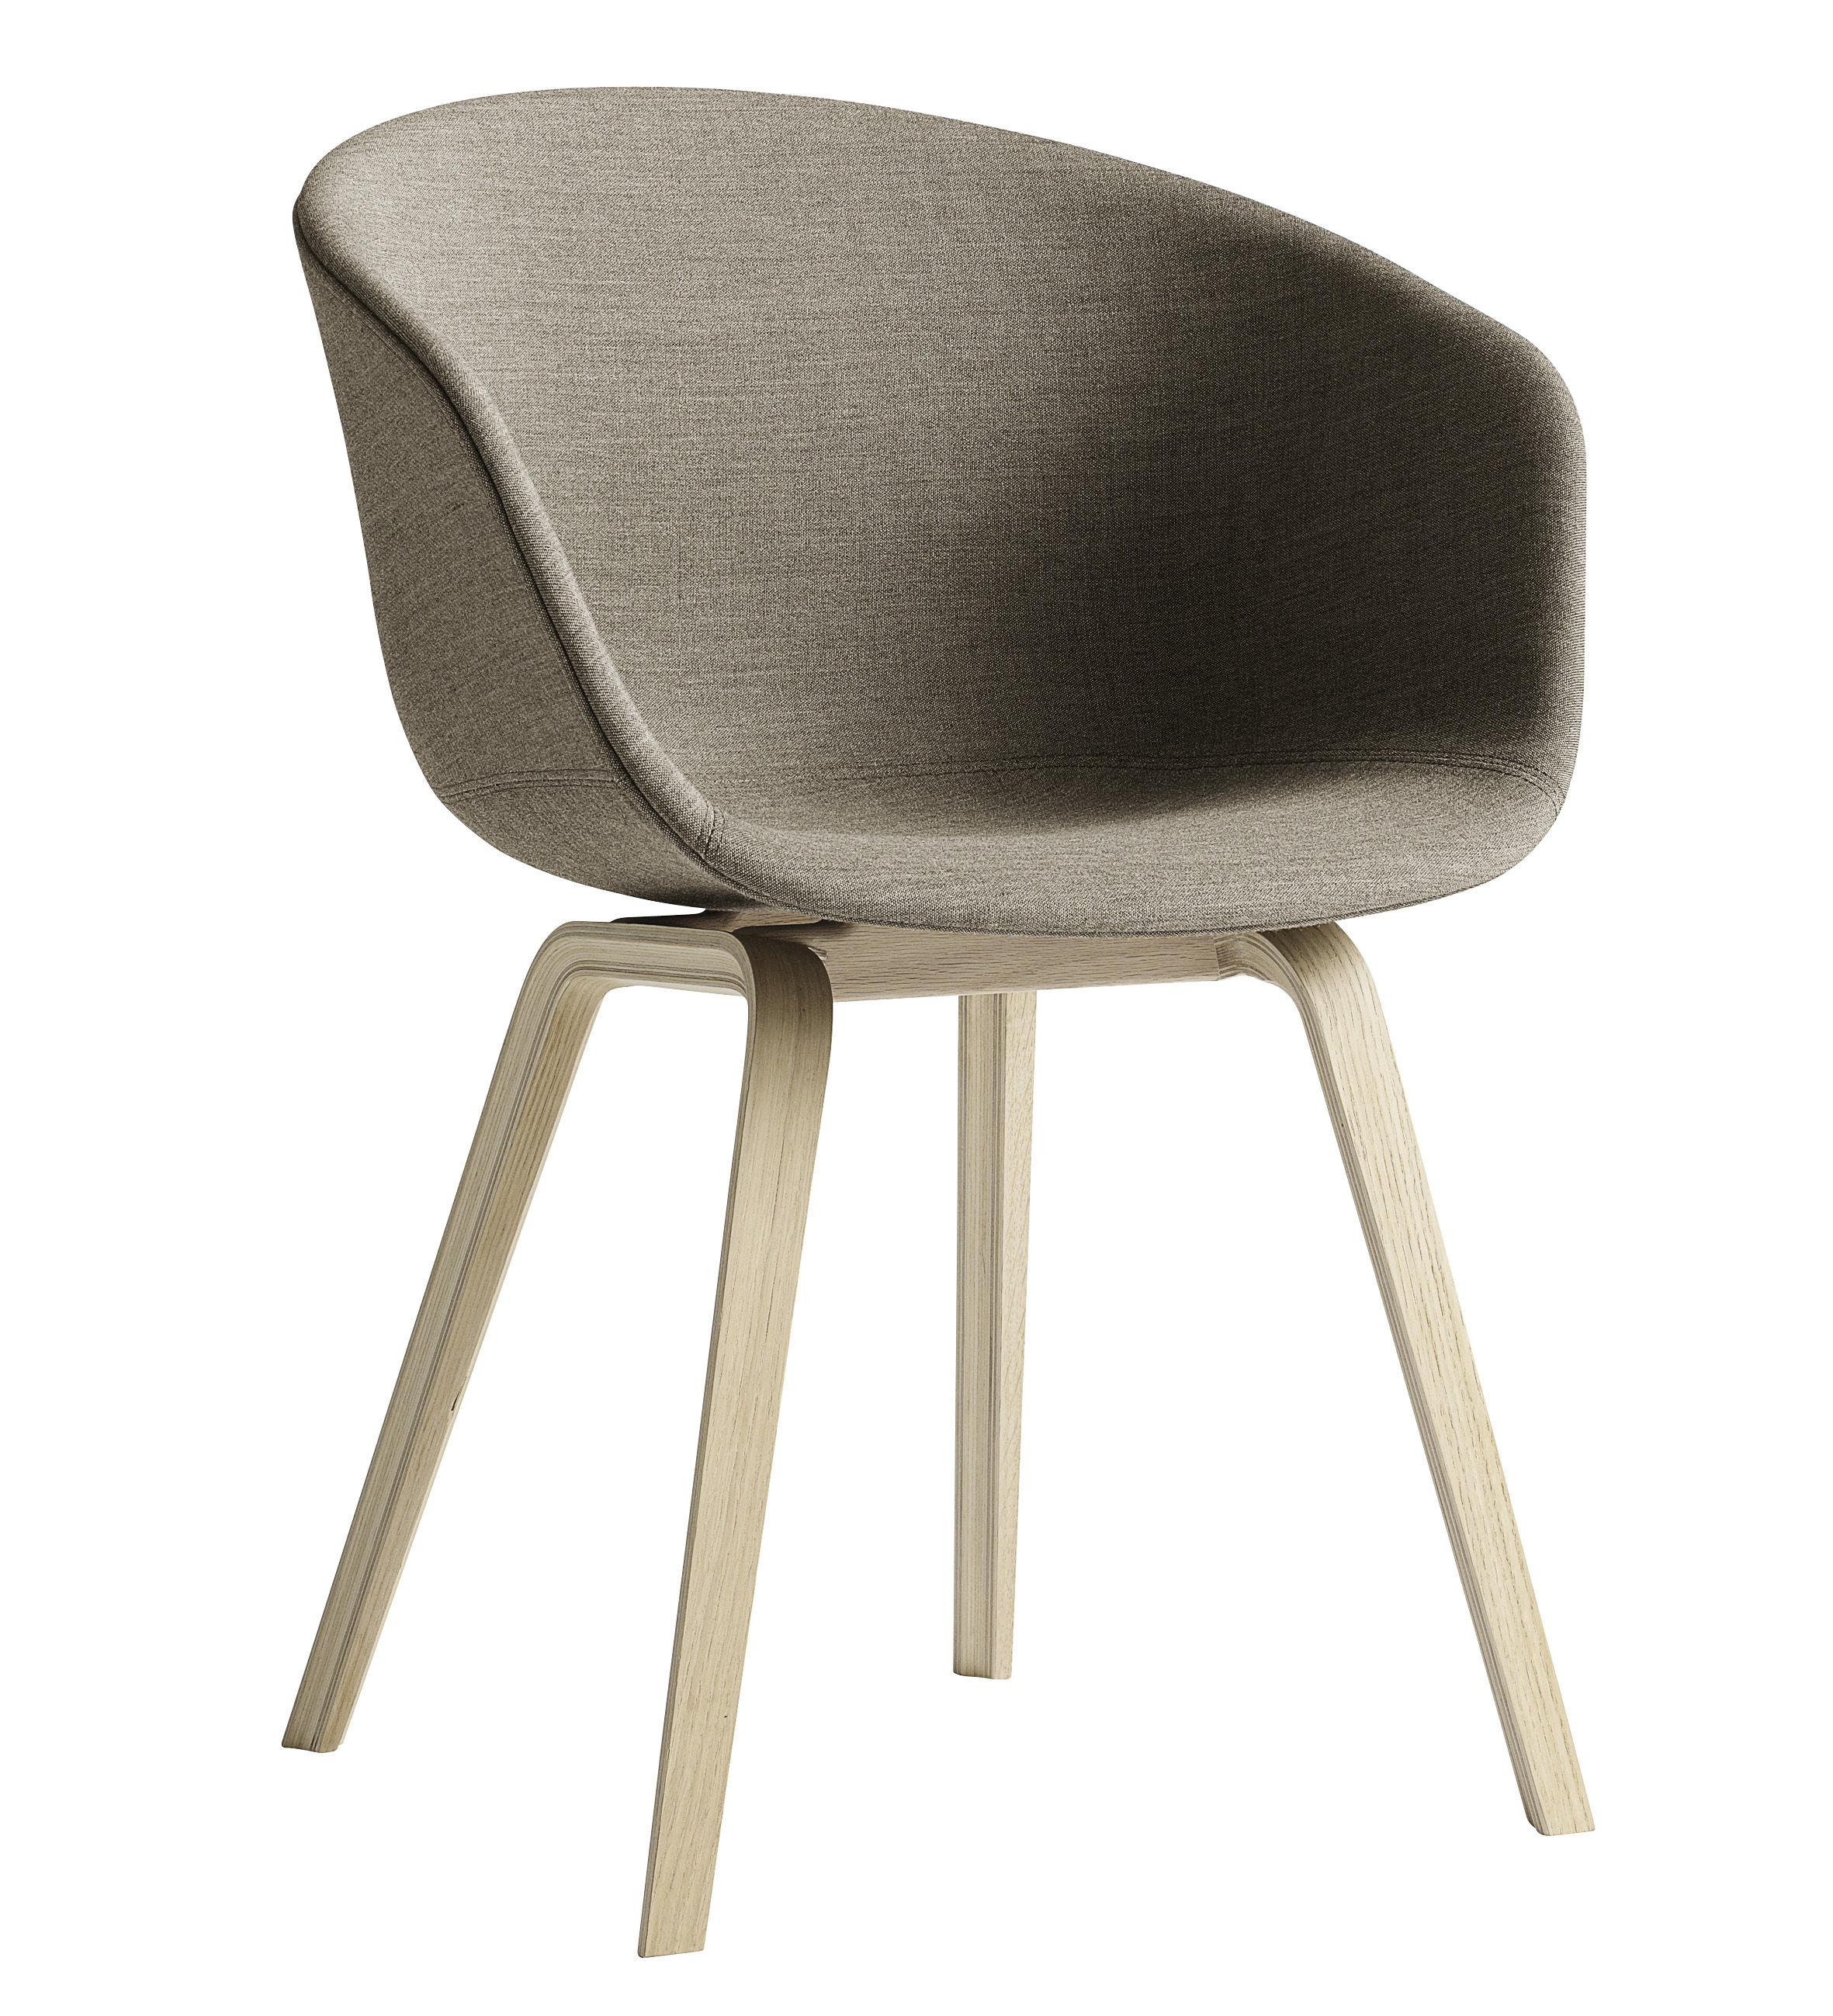 Furniture - Chairs - About a chair Padded armchair - 4 legs /Full fabric by Hay - Beige / Natural oak feet - Fabric, Oak, Polypropylene